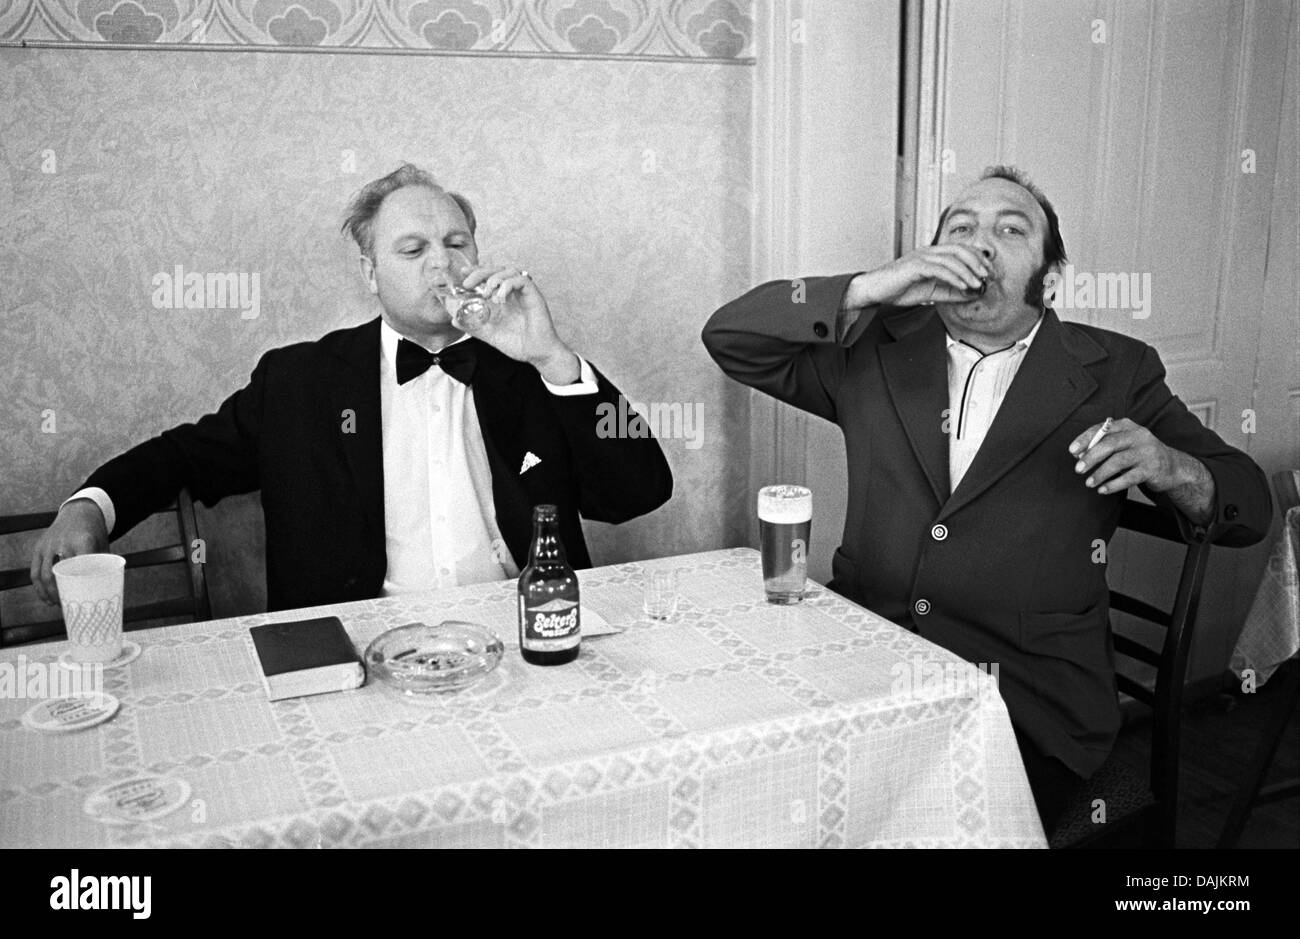 A file picture shows two men alcoholic drinks during the corpus christi celebration in Helbra, Germany, 14 June - Stock Image